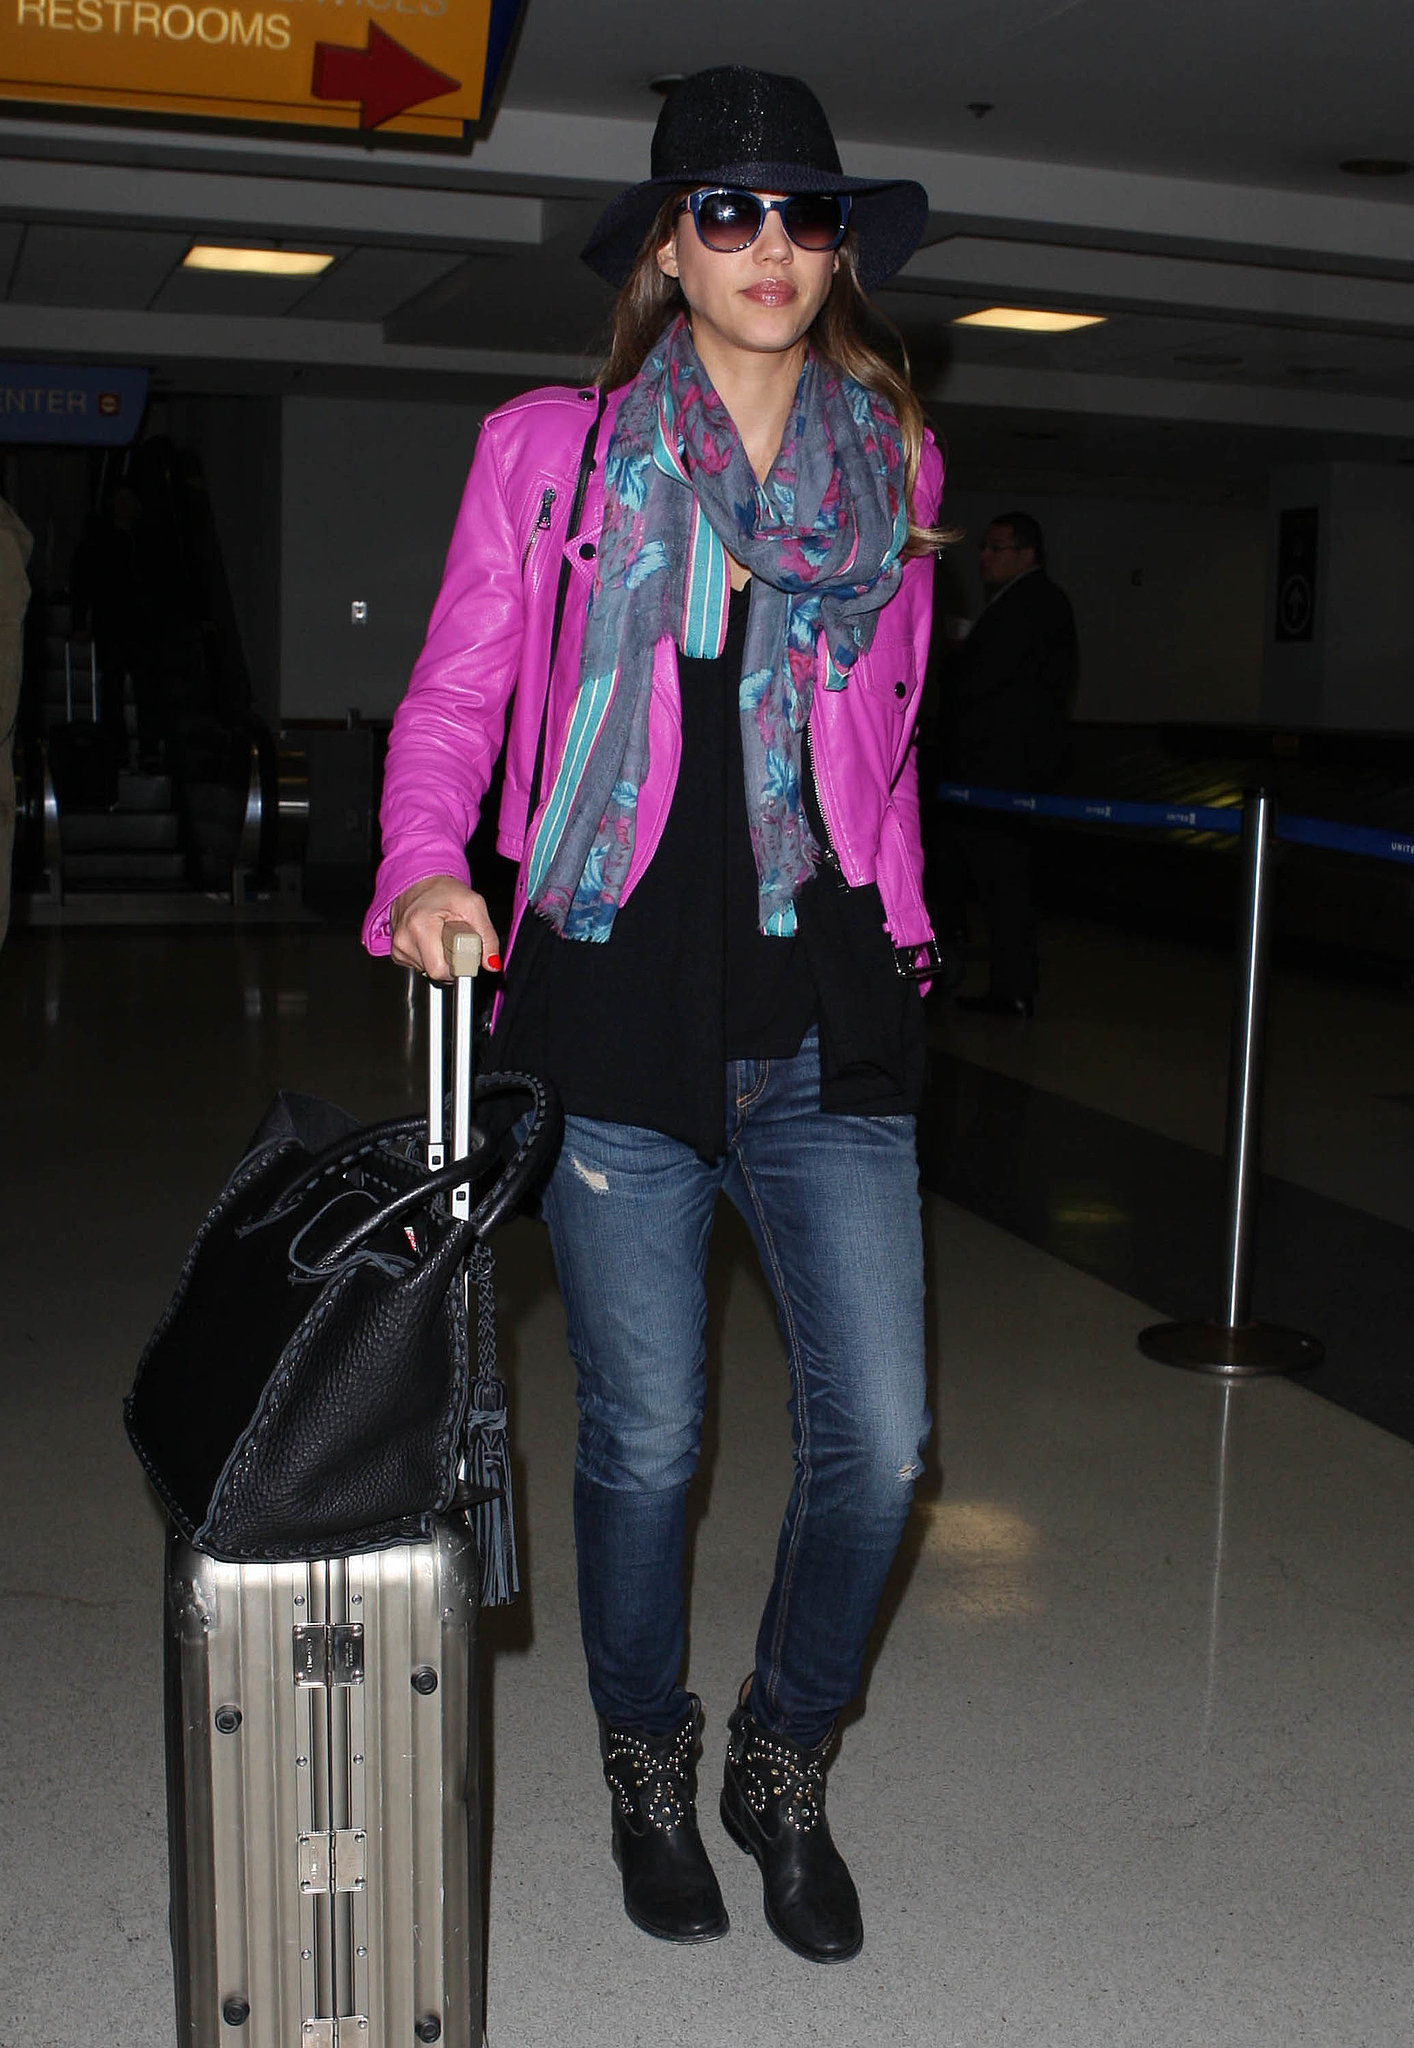 We understand you're trying to be incognito Jessica, but that hot pink leather Ralph Lauren jacket and those studded Isabel Marant boots are the opposite of subdued.